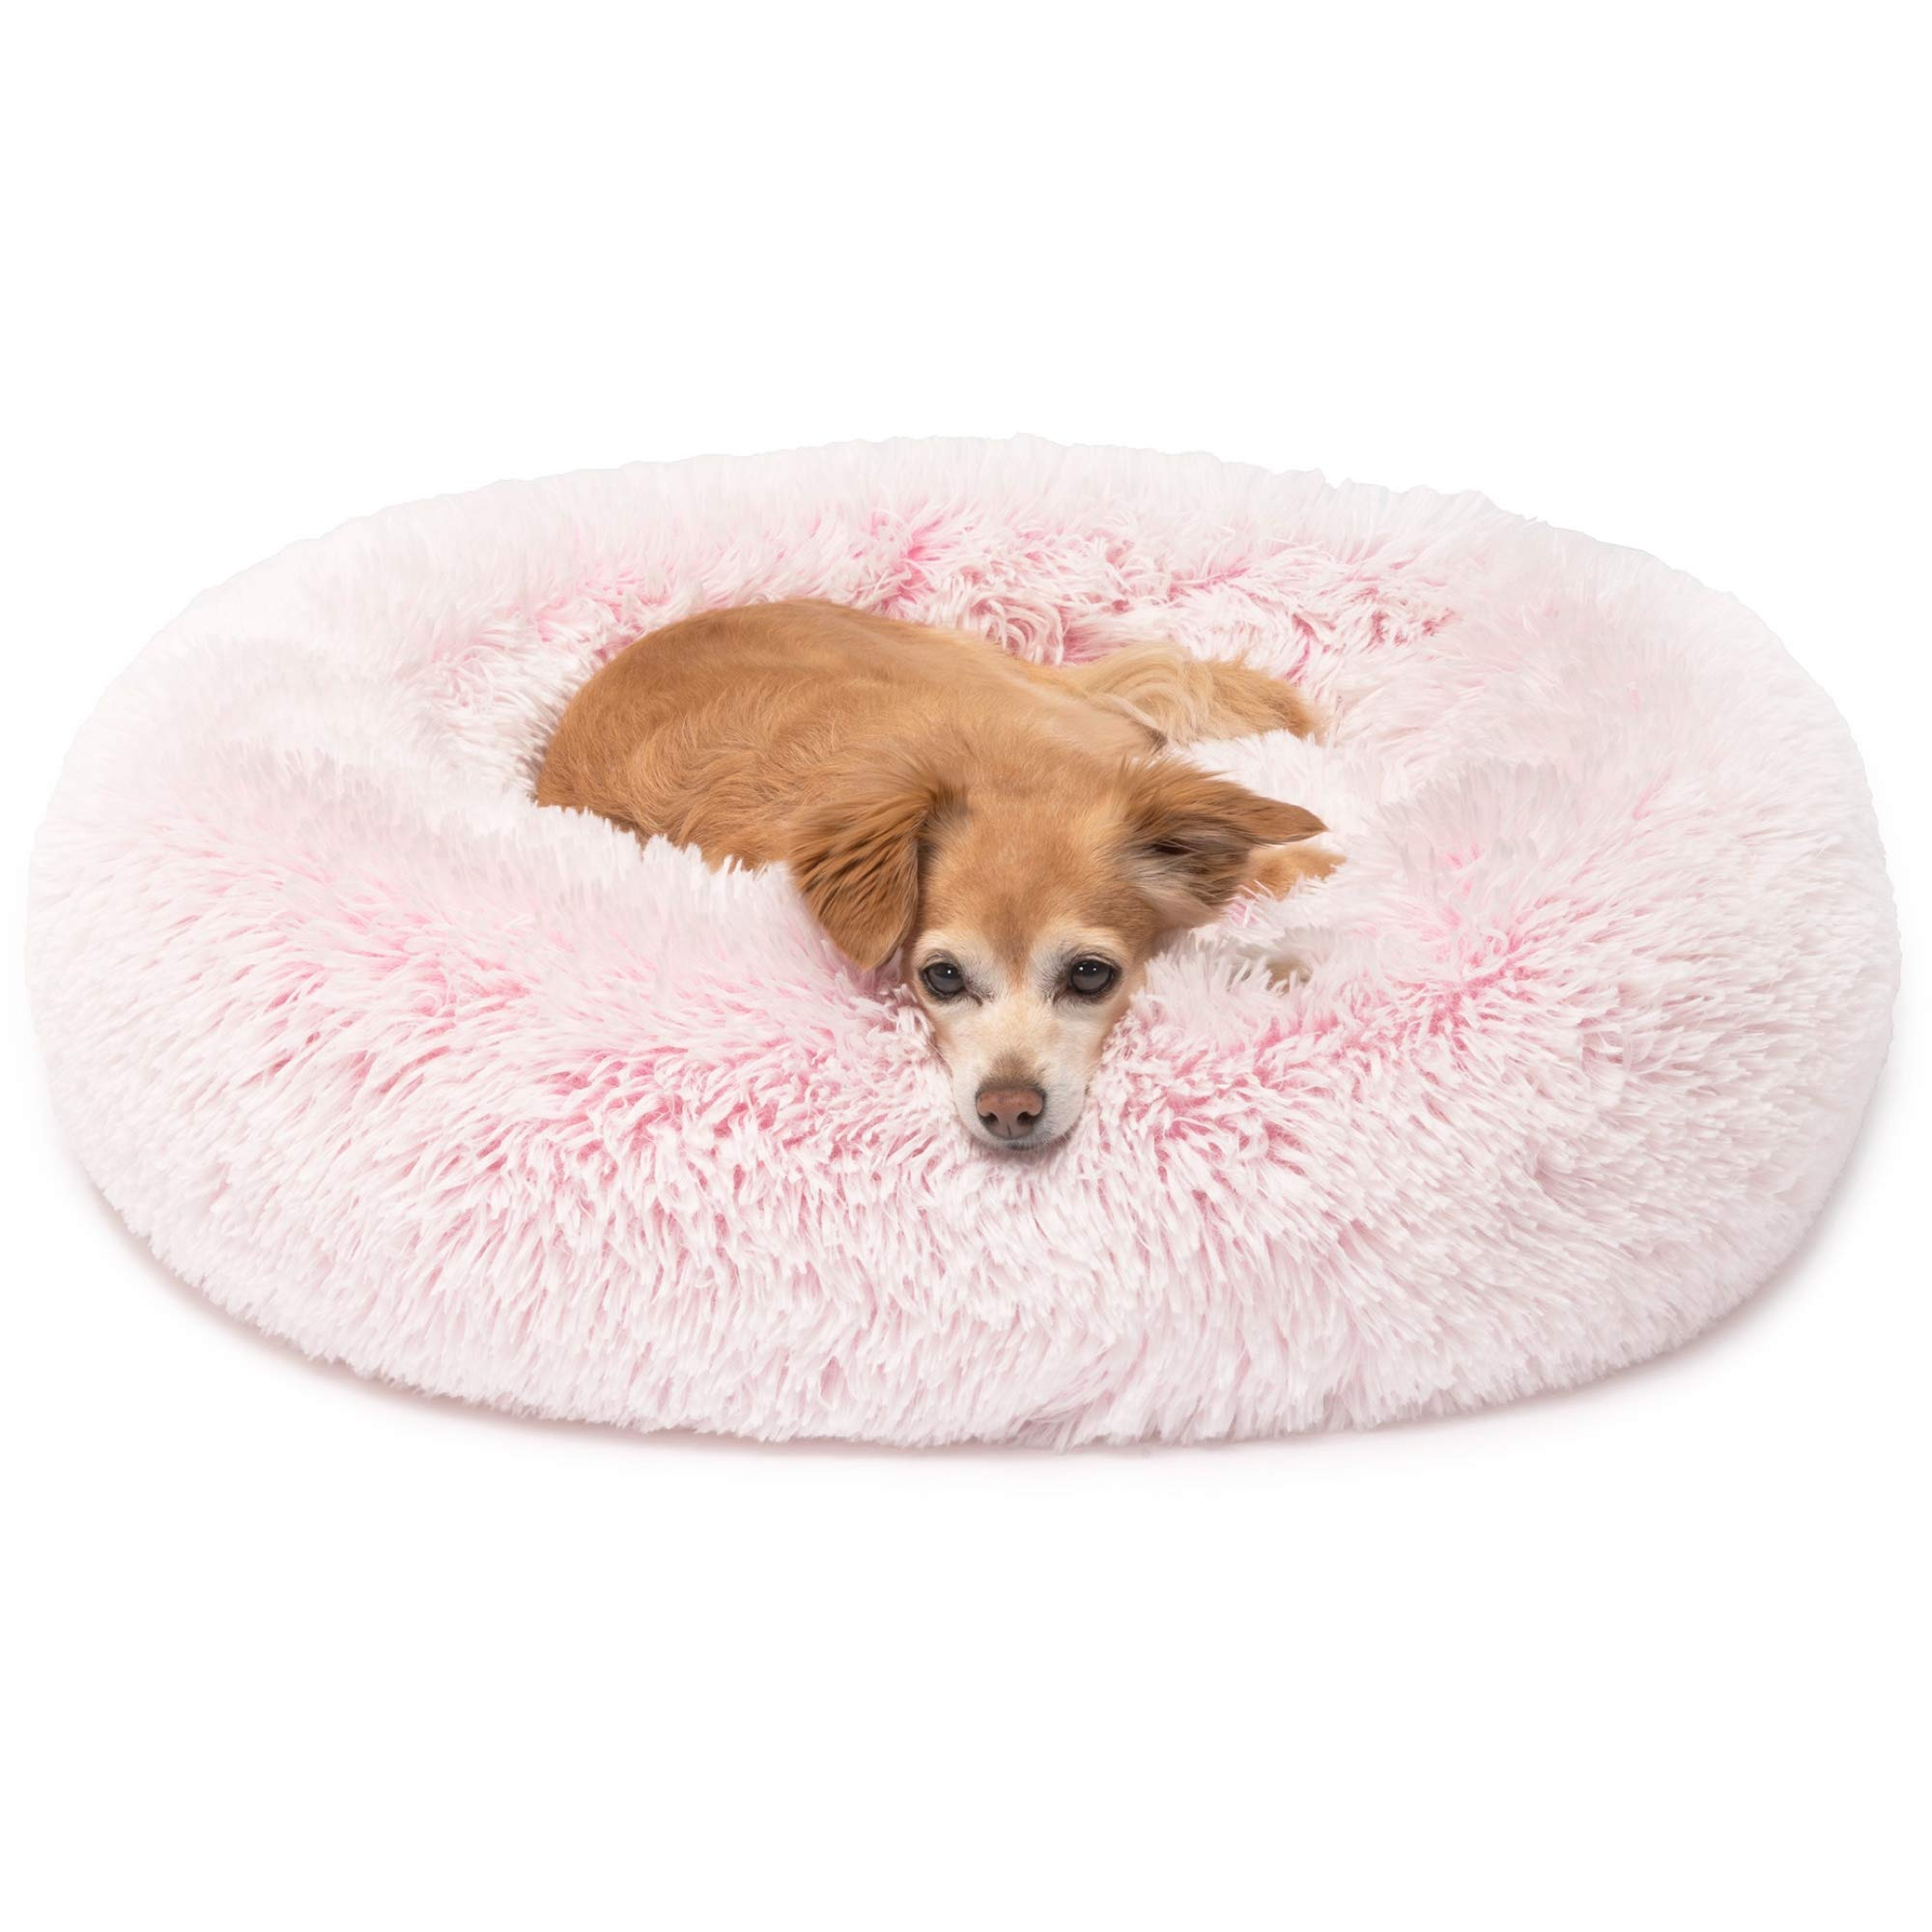 Cute Snuggle Pink Dog Bed Cuddler, Round Donut Pet Beds for Small Cat to Medium Dogs